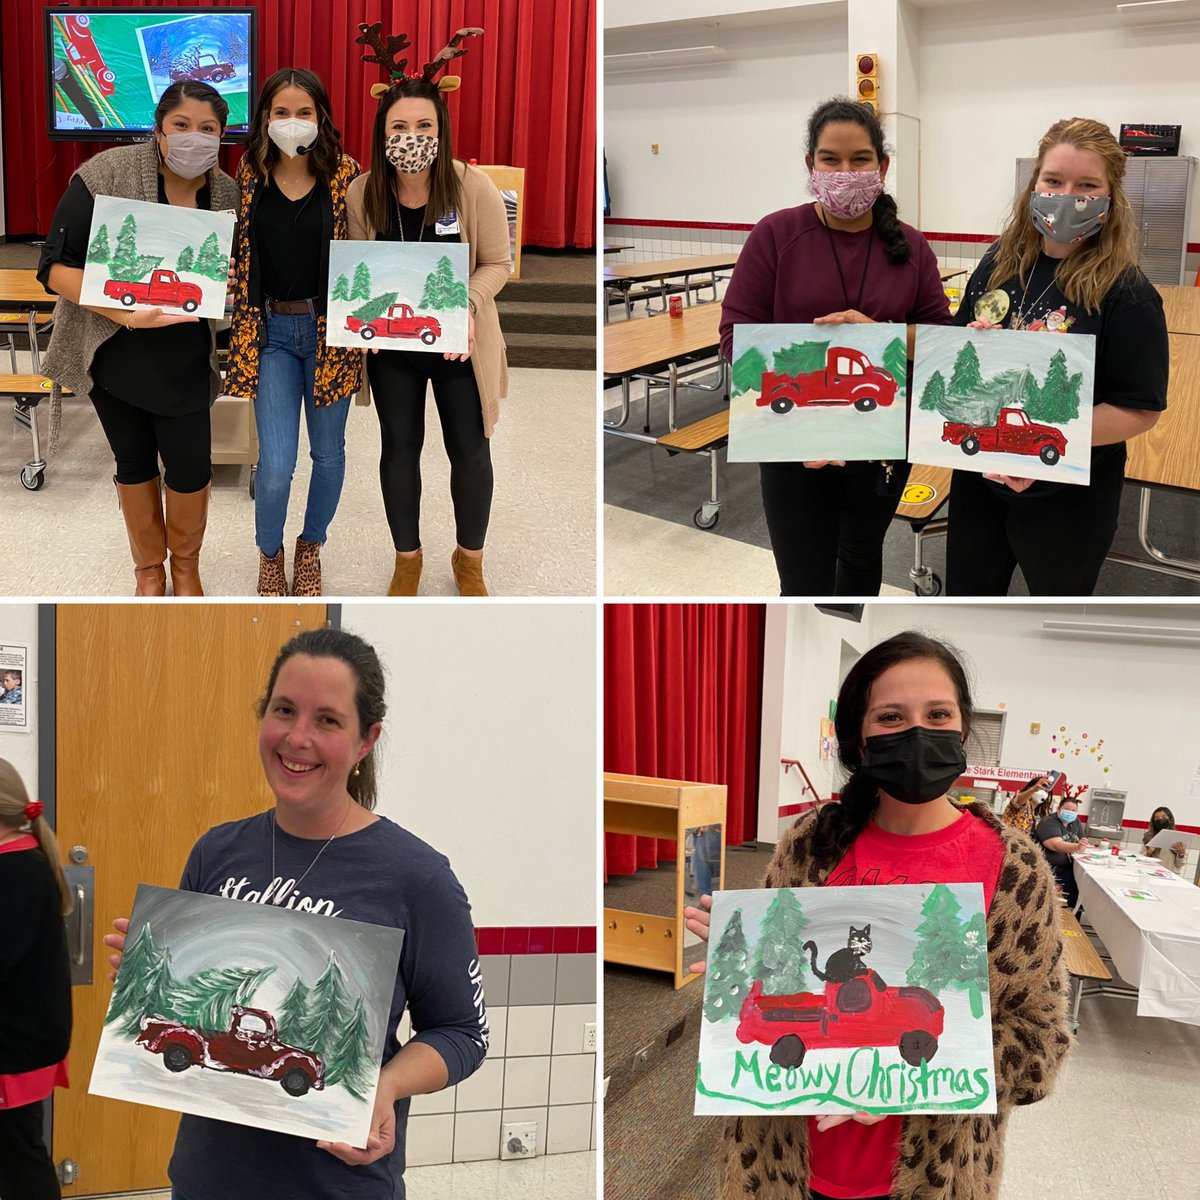 Staff Holiday social! Enjoyed socializing, painting, and relaxing with good friends! @estradac_cfb